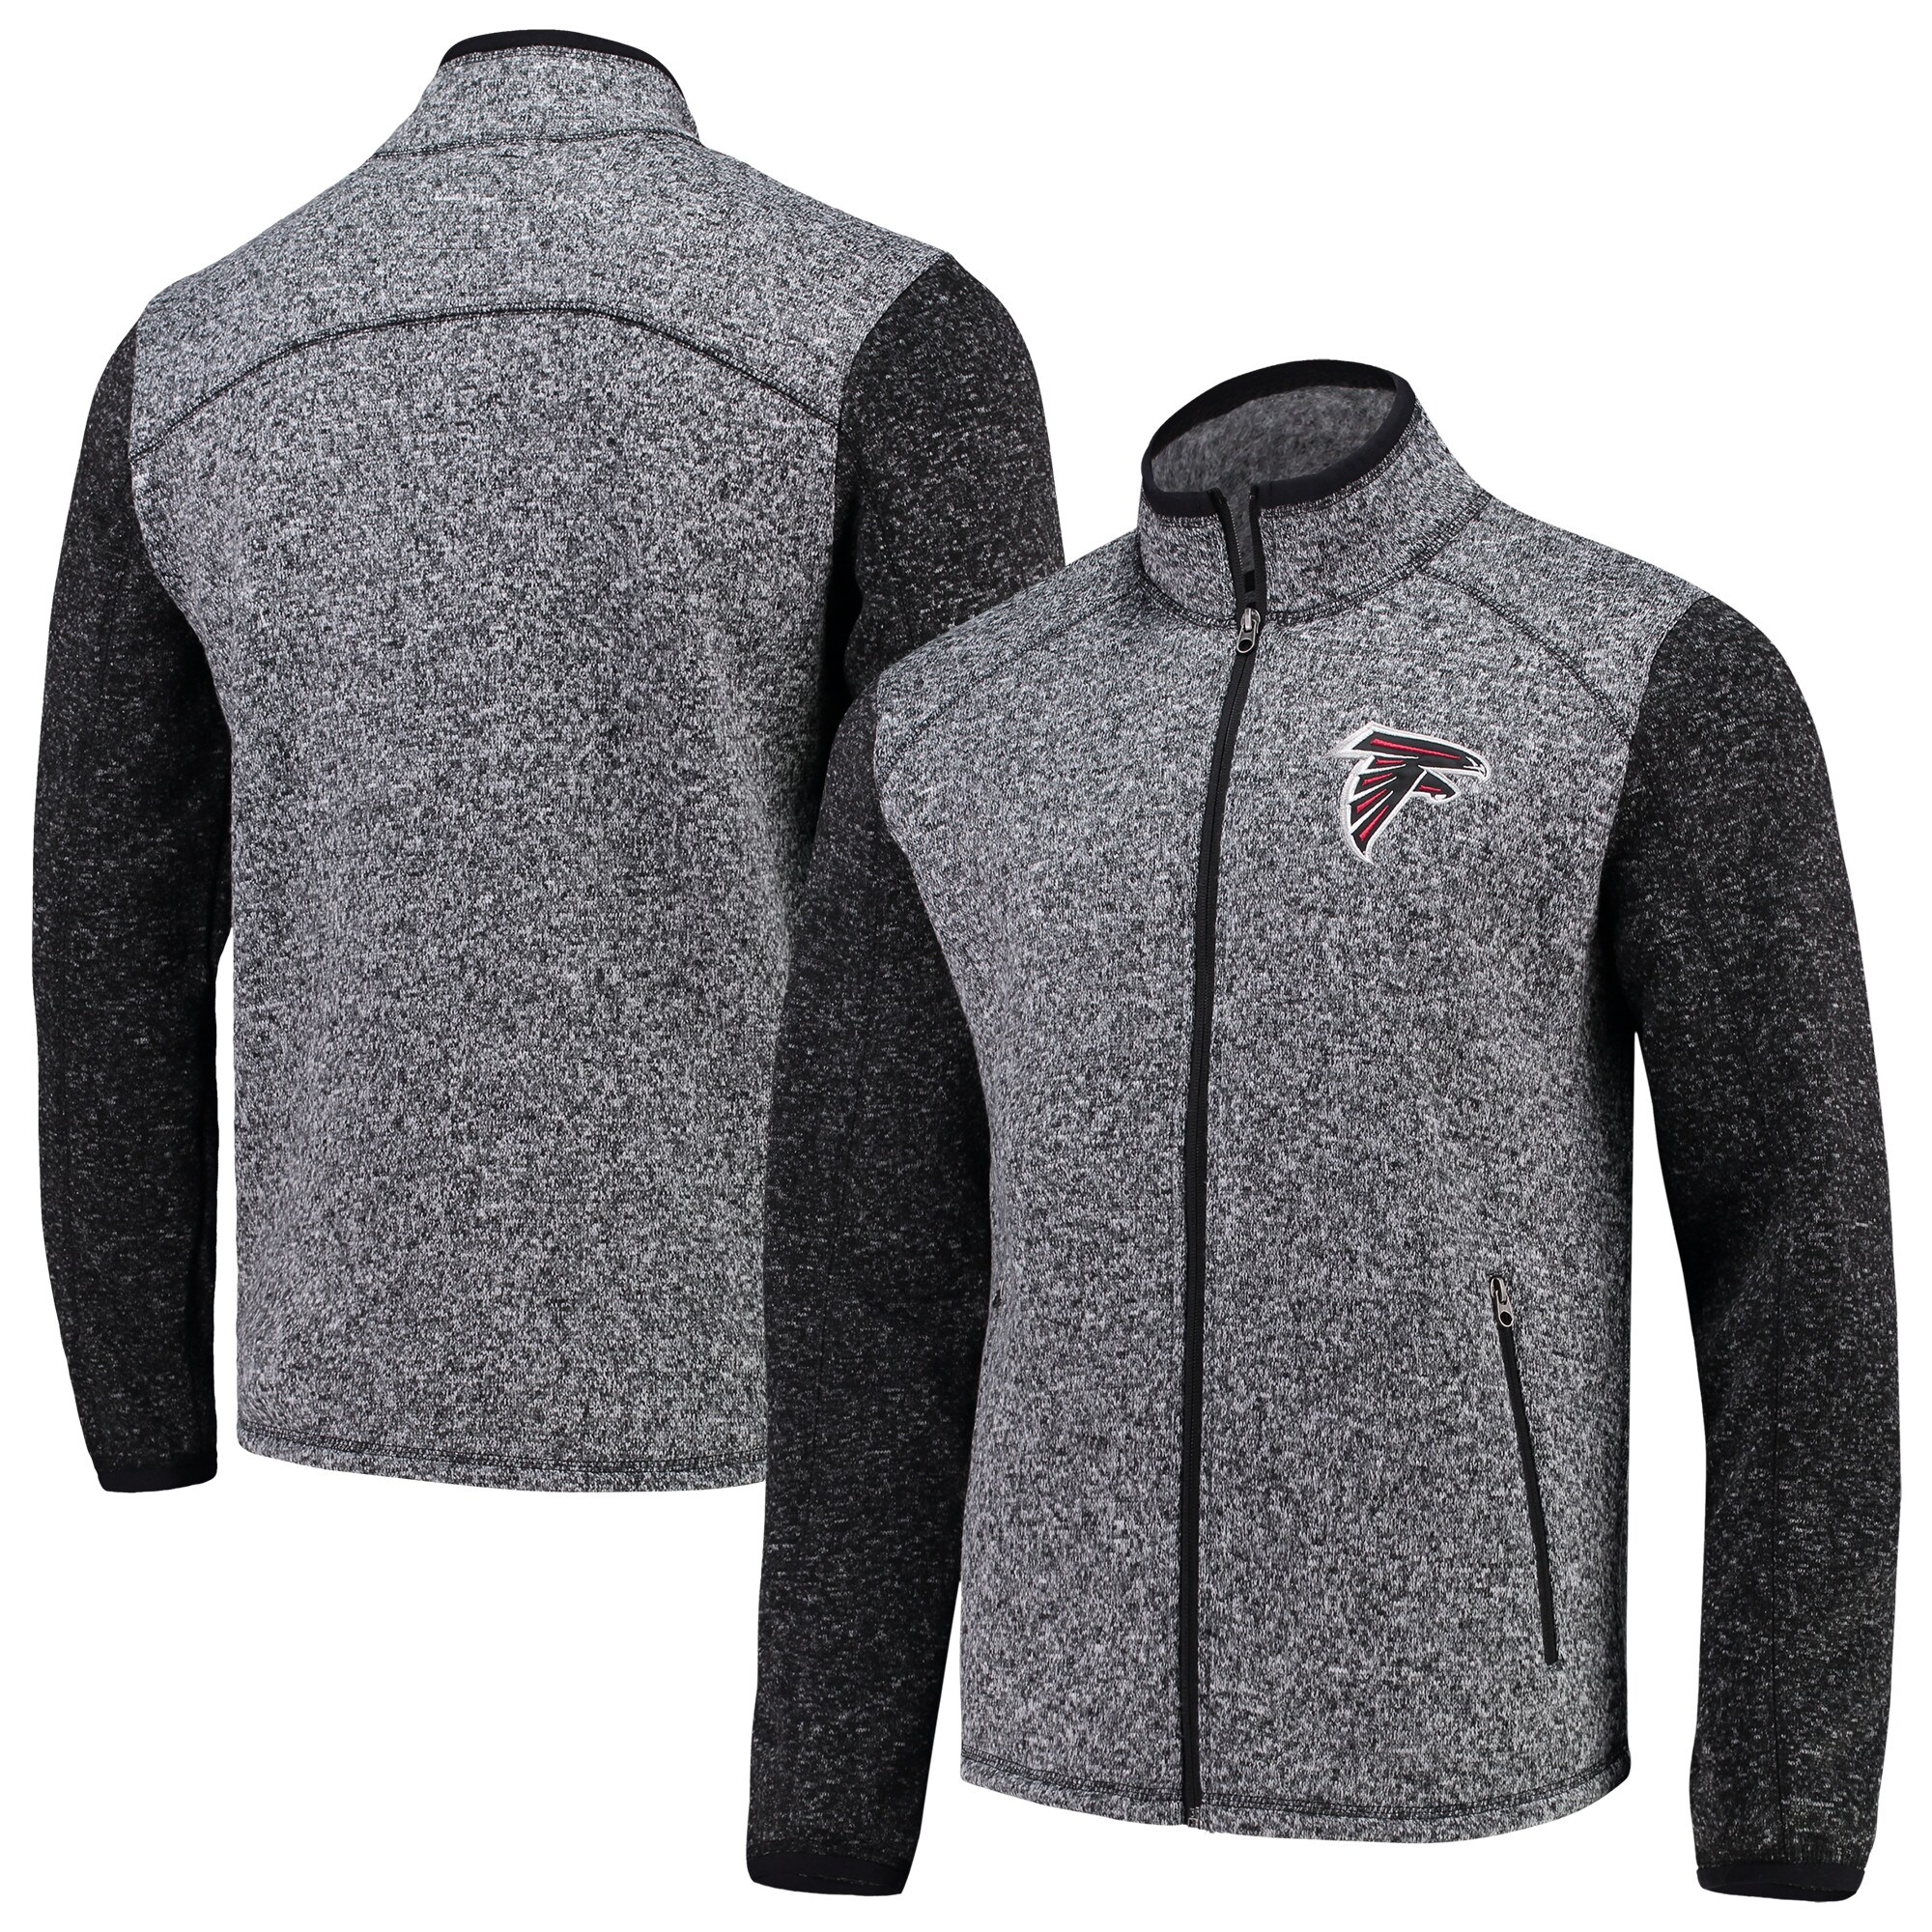 Atlanta Falcons G-III Sports by Carl Banks Alpine Zone Sweater Fleece Full-Zip Jacket - Heathered Charcoal